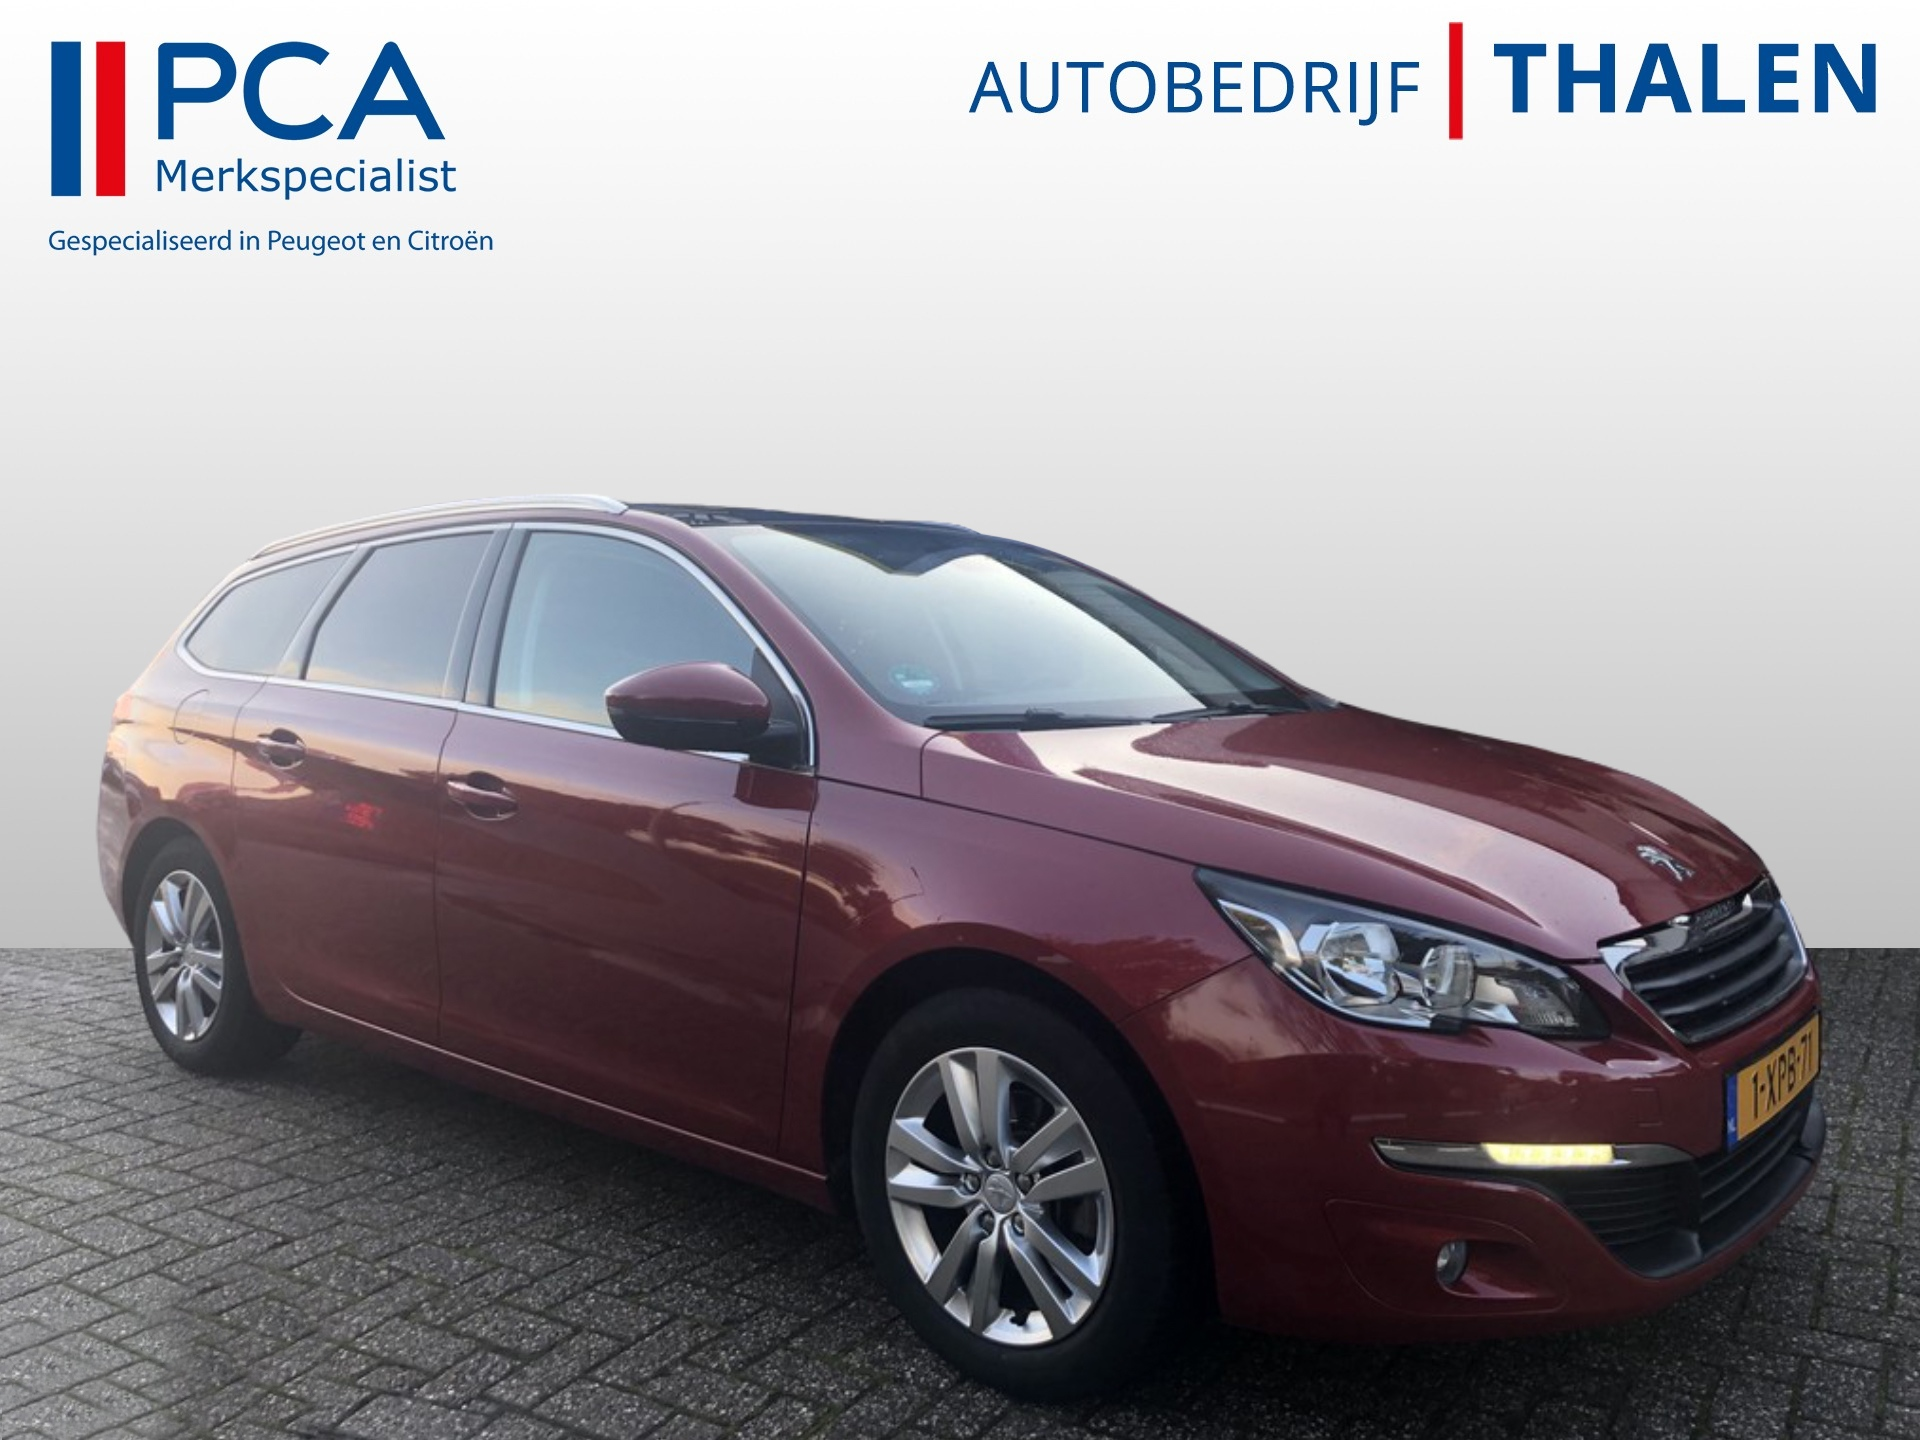 Peugeot 308 AUTOMAAT 130 PK, LUXE SW 1.2 e-THP Blue Lease Executive Automaat